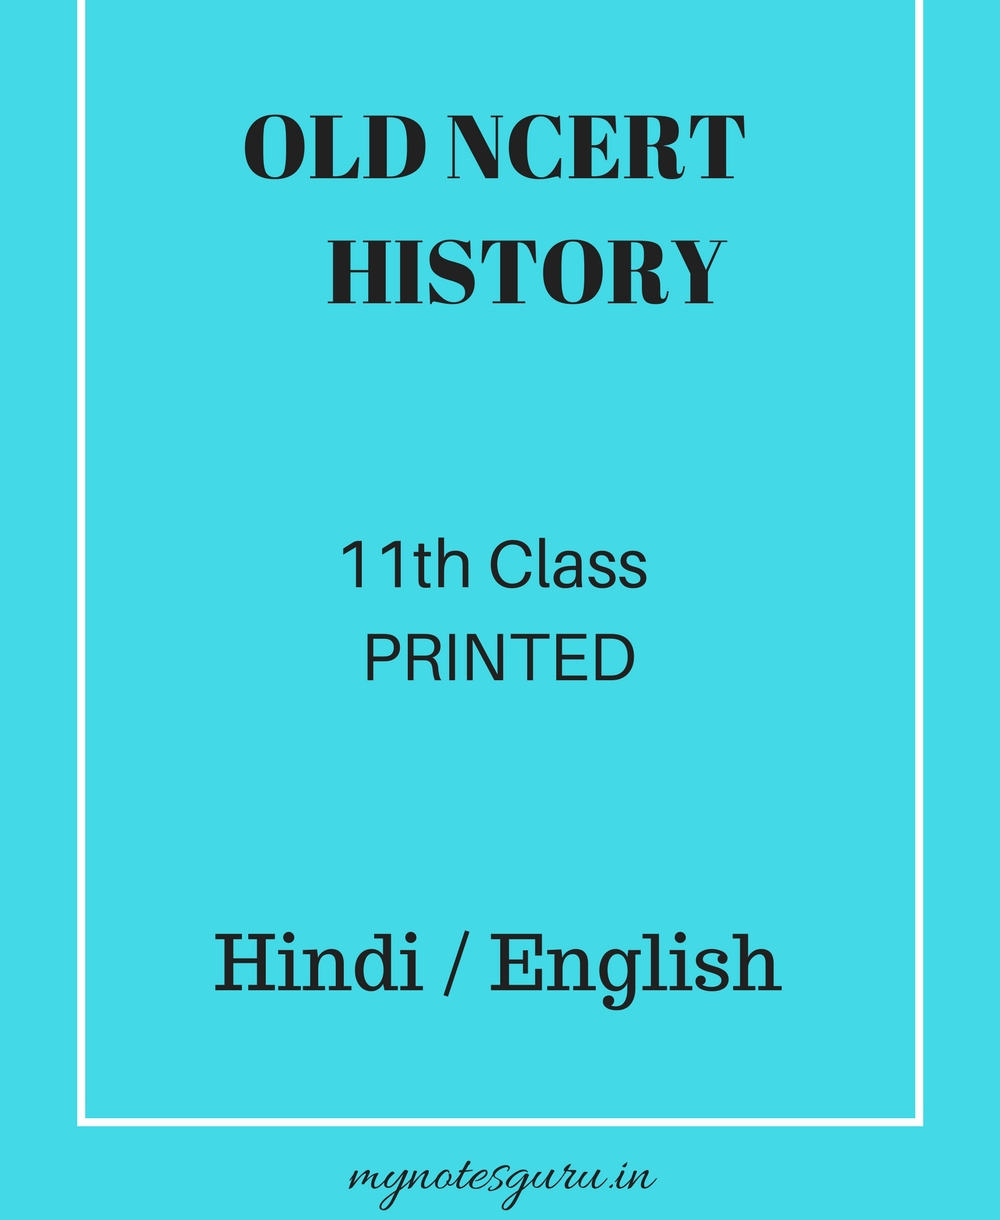 History (11th class) in English / Hindi – History – Old NCERT – Printed  Booklets